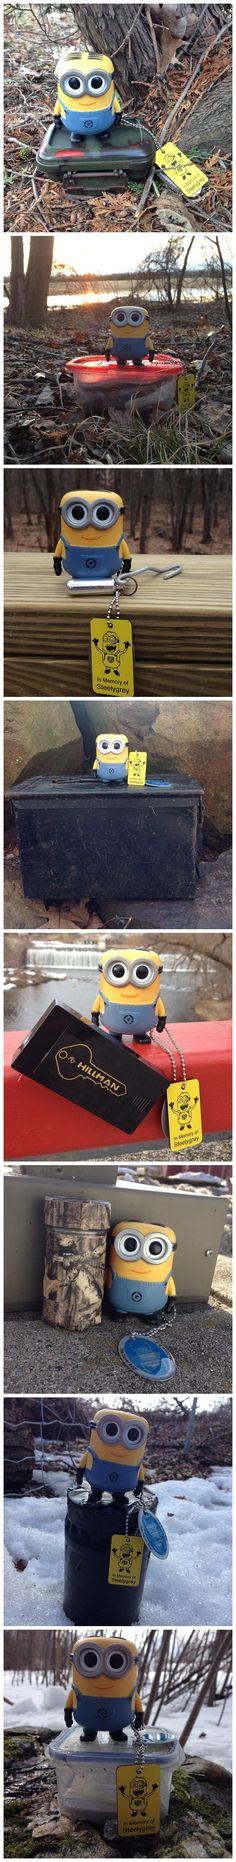 A Minion goes geocaching! Geocaching Containers, Swag Ideas, Travel Humor, Travel Bugs, Go Outside, Celebrity Weddings, State Parks, Minions, Geek Stuff